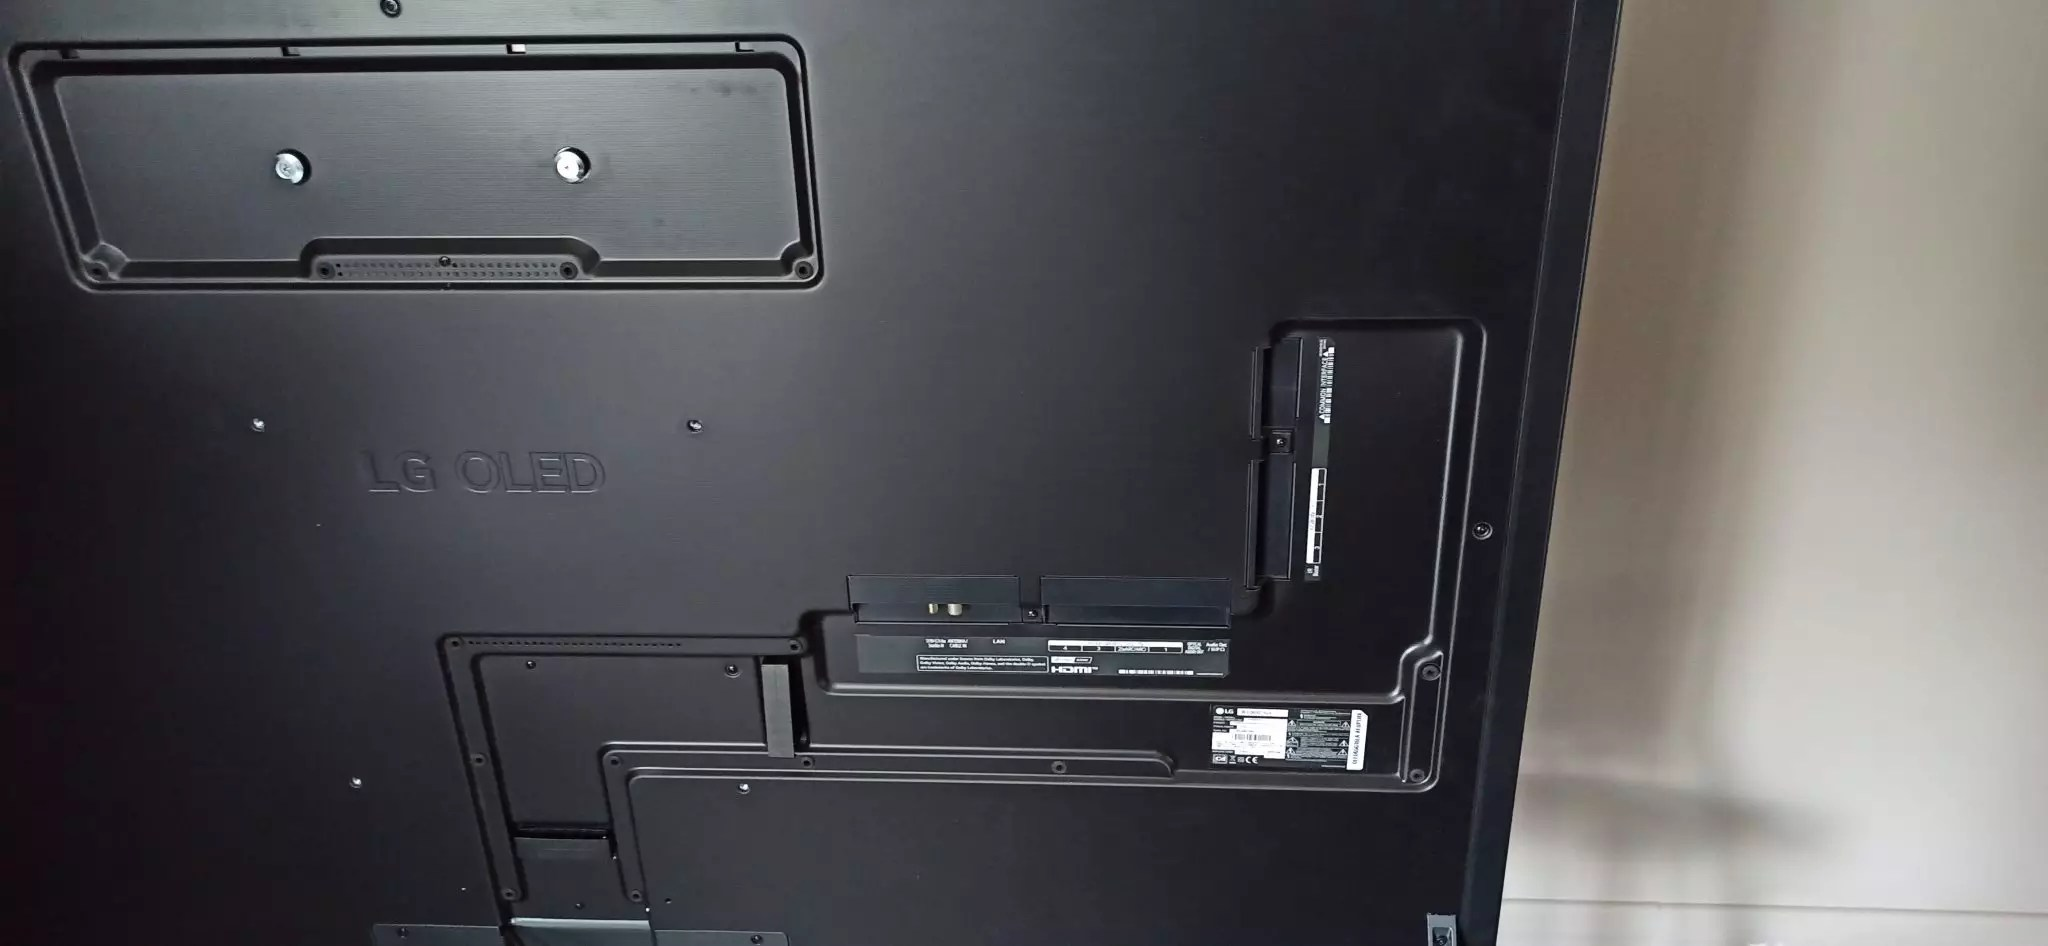 LG 65G1 arriere